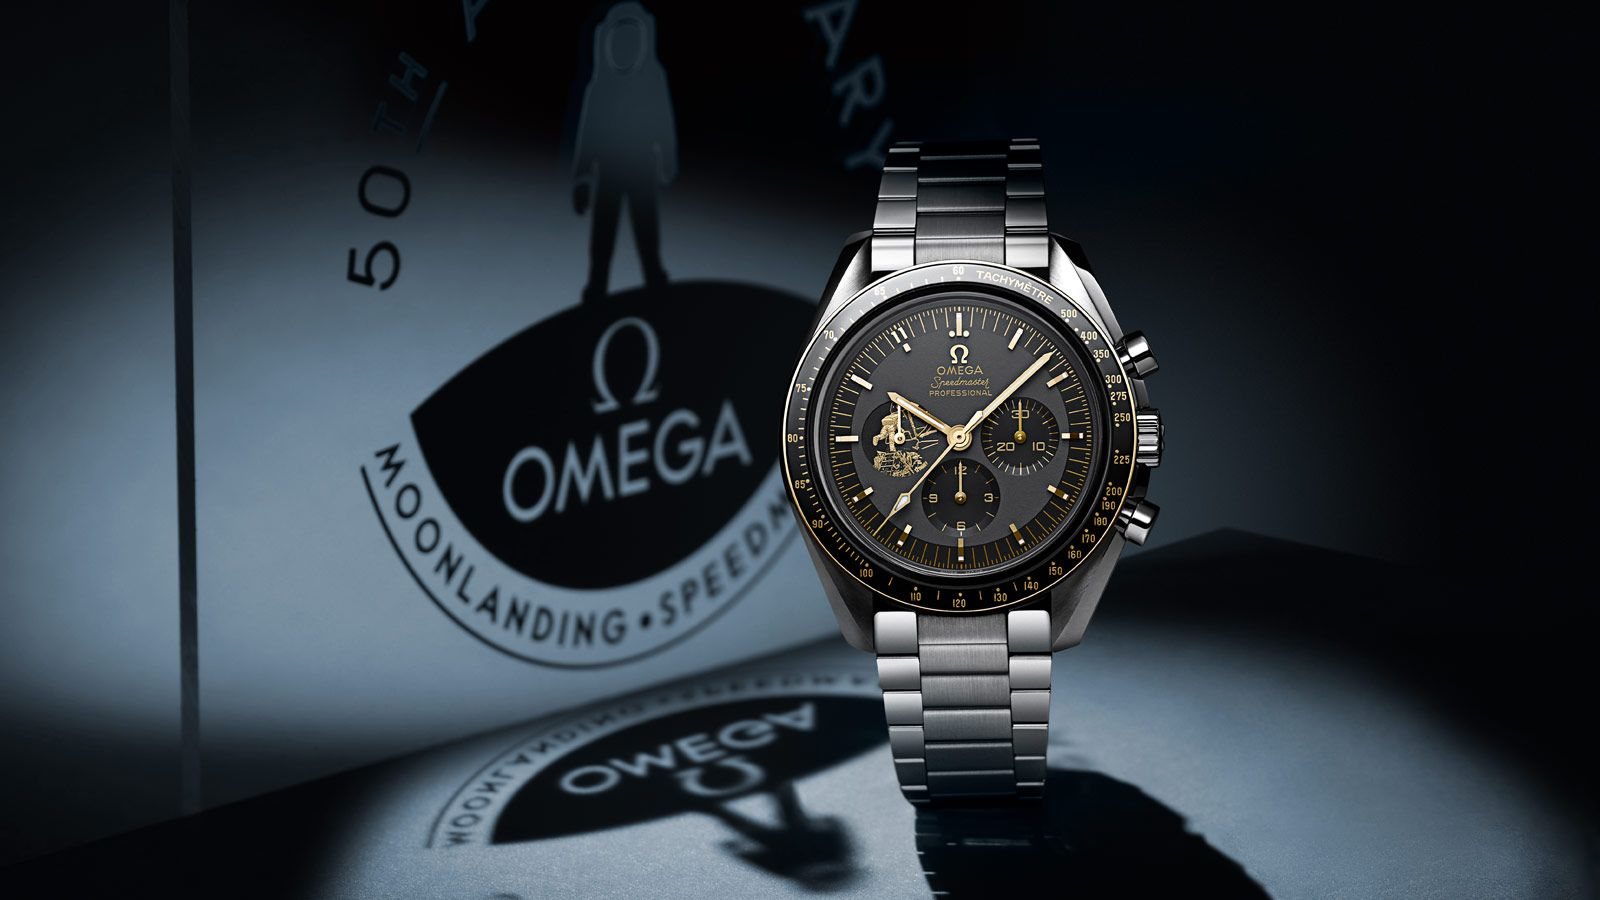 Introducing The Omega Speedmaster Apollo 11 50th Anniversary Limited Edition Watch Omega Speedmaster Omega Vintage Watches